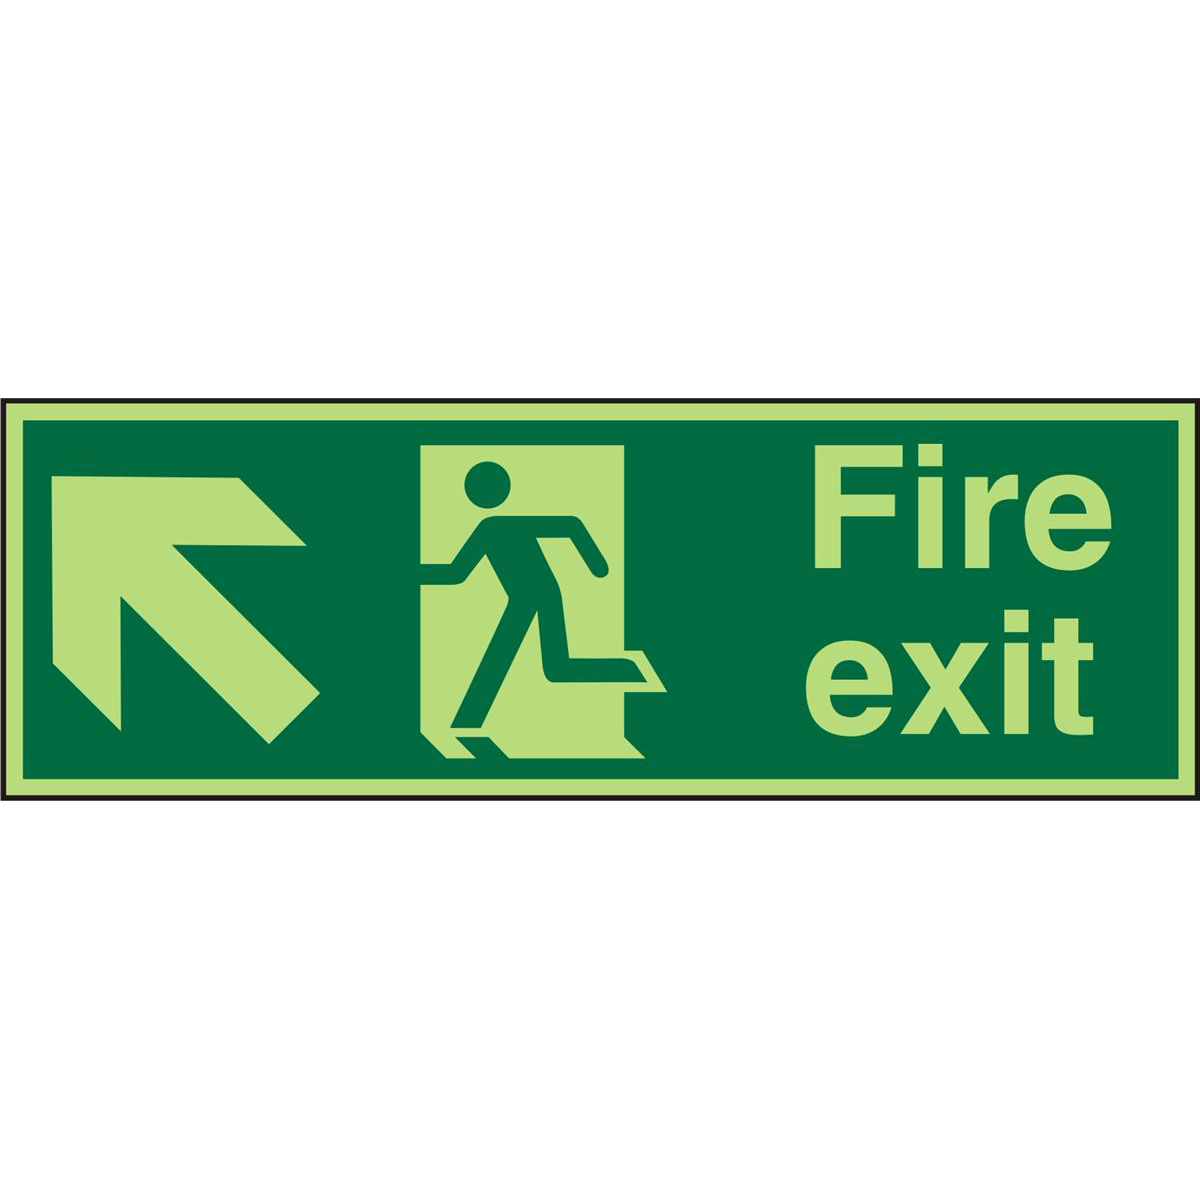 Photolum Sign 450x150 S/A FireExit Man Running Left&Arrow Ref PSP317SAV450x150 *Up to 10 Day Leadtime*